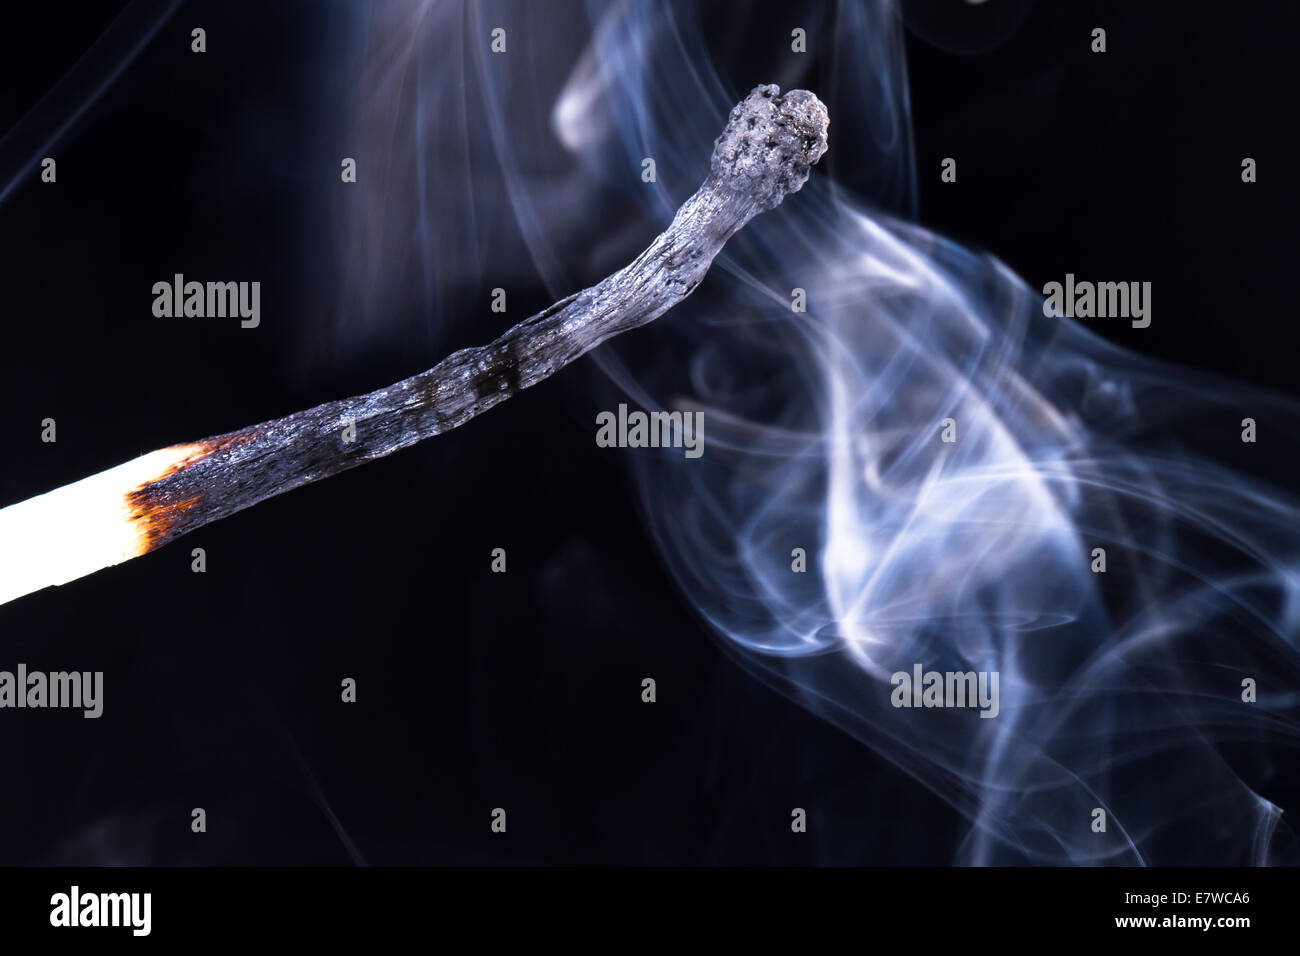 Burnt match with smoke on dark background. - Stock Image